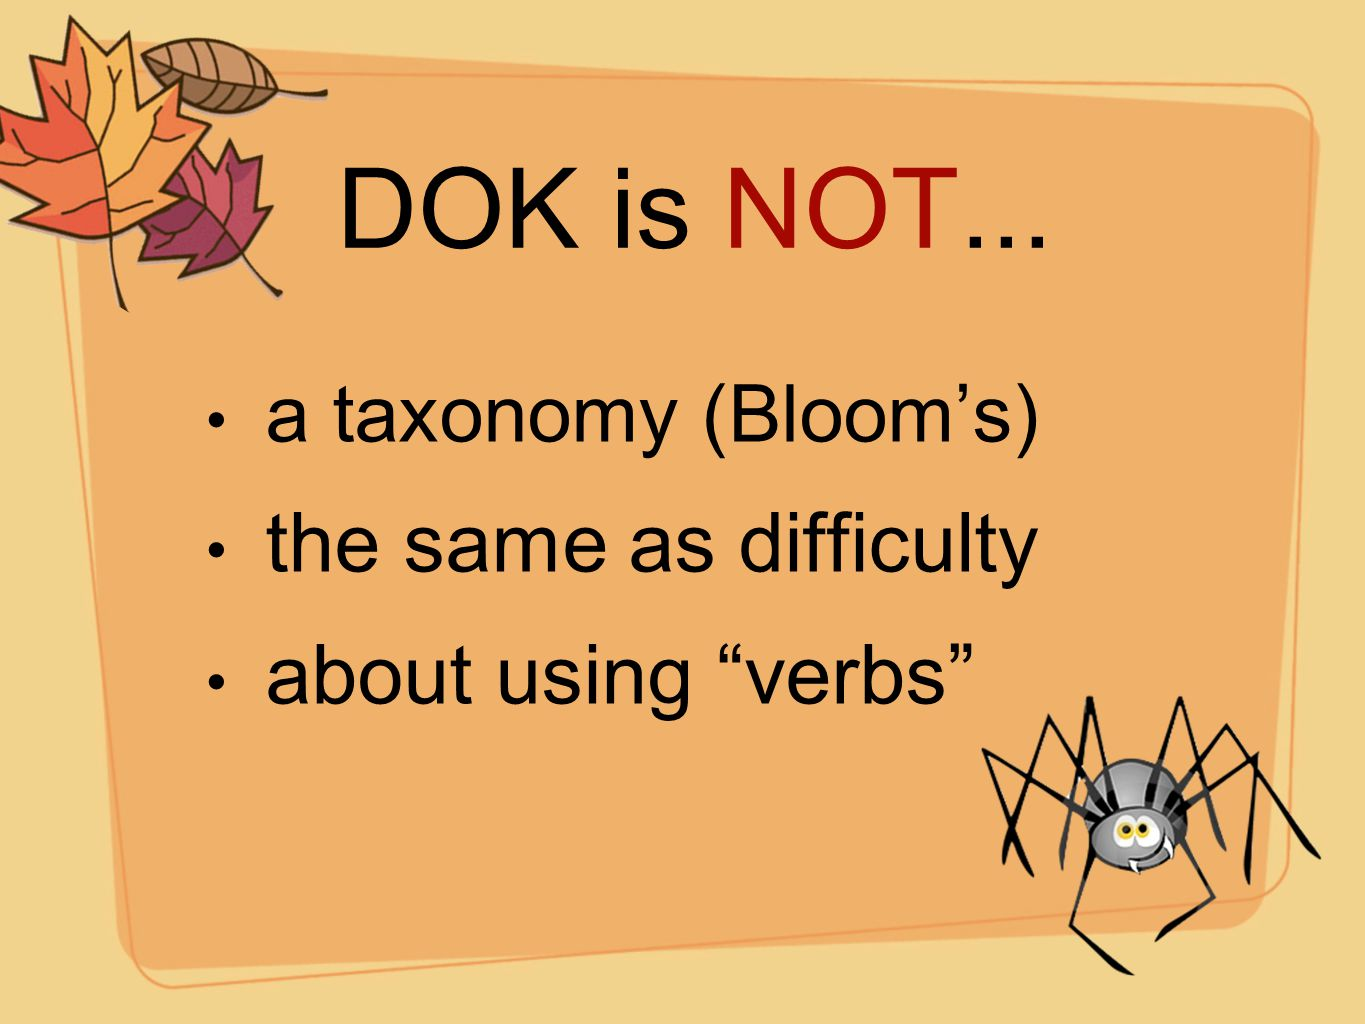 """DOK is NOT... a taxonomy (Bloom's) the same as difficulty about using """"verbs"""""""